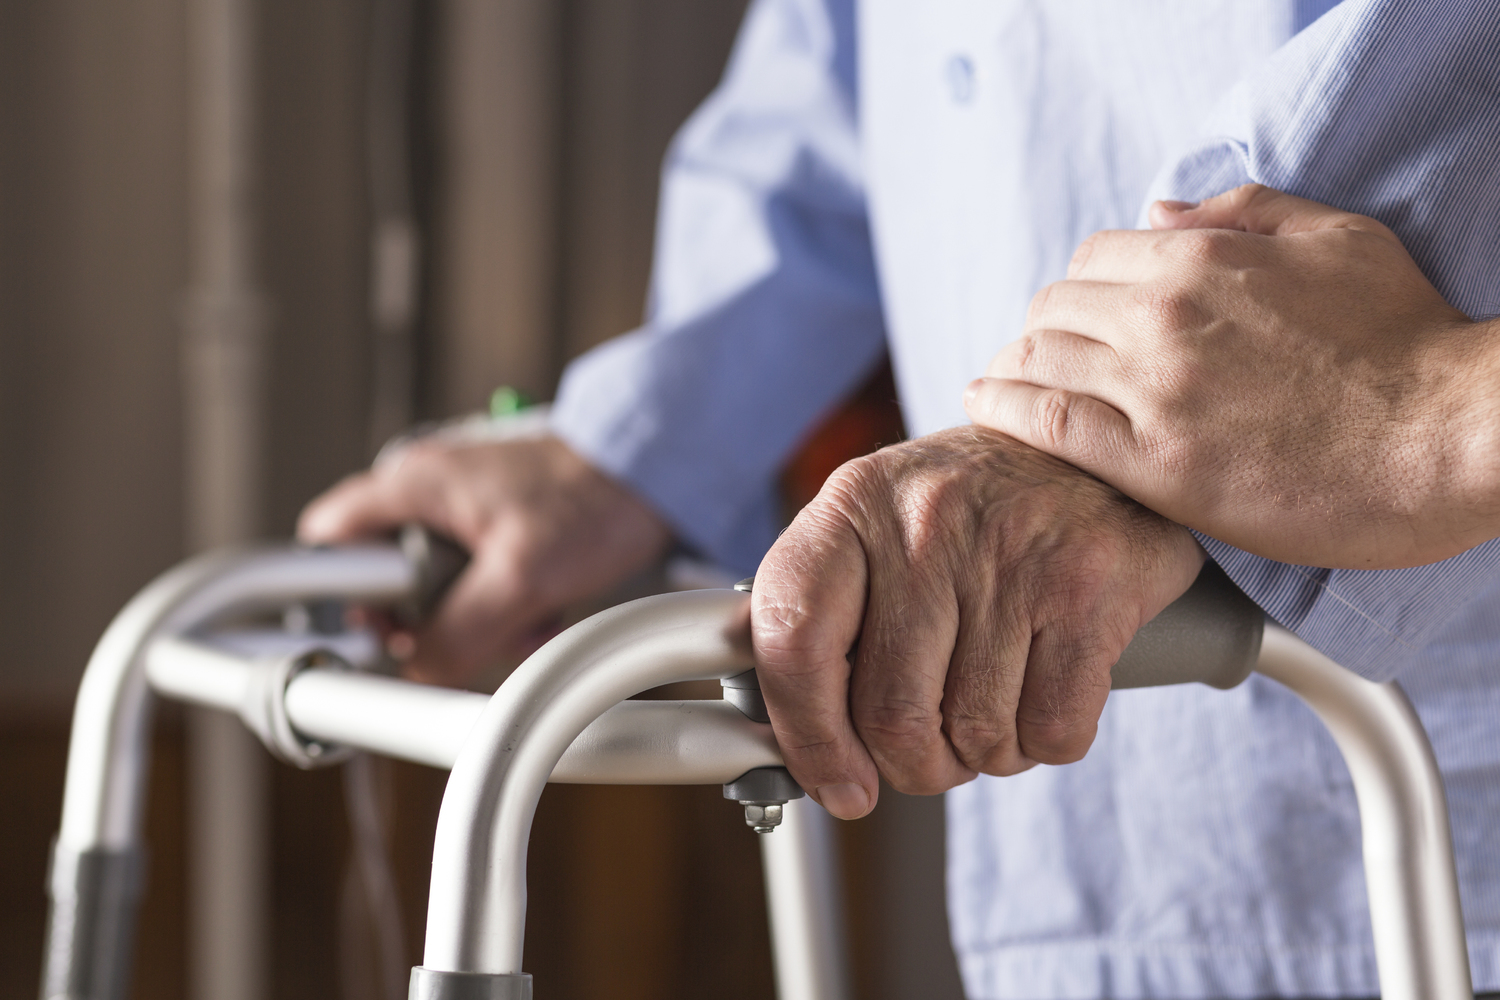 Tulsa Oklahoma Home Care Services: Oxford Home HealthCare